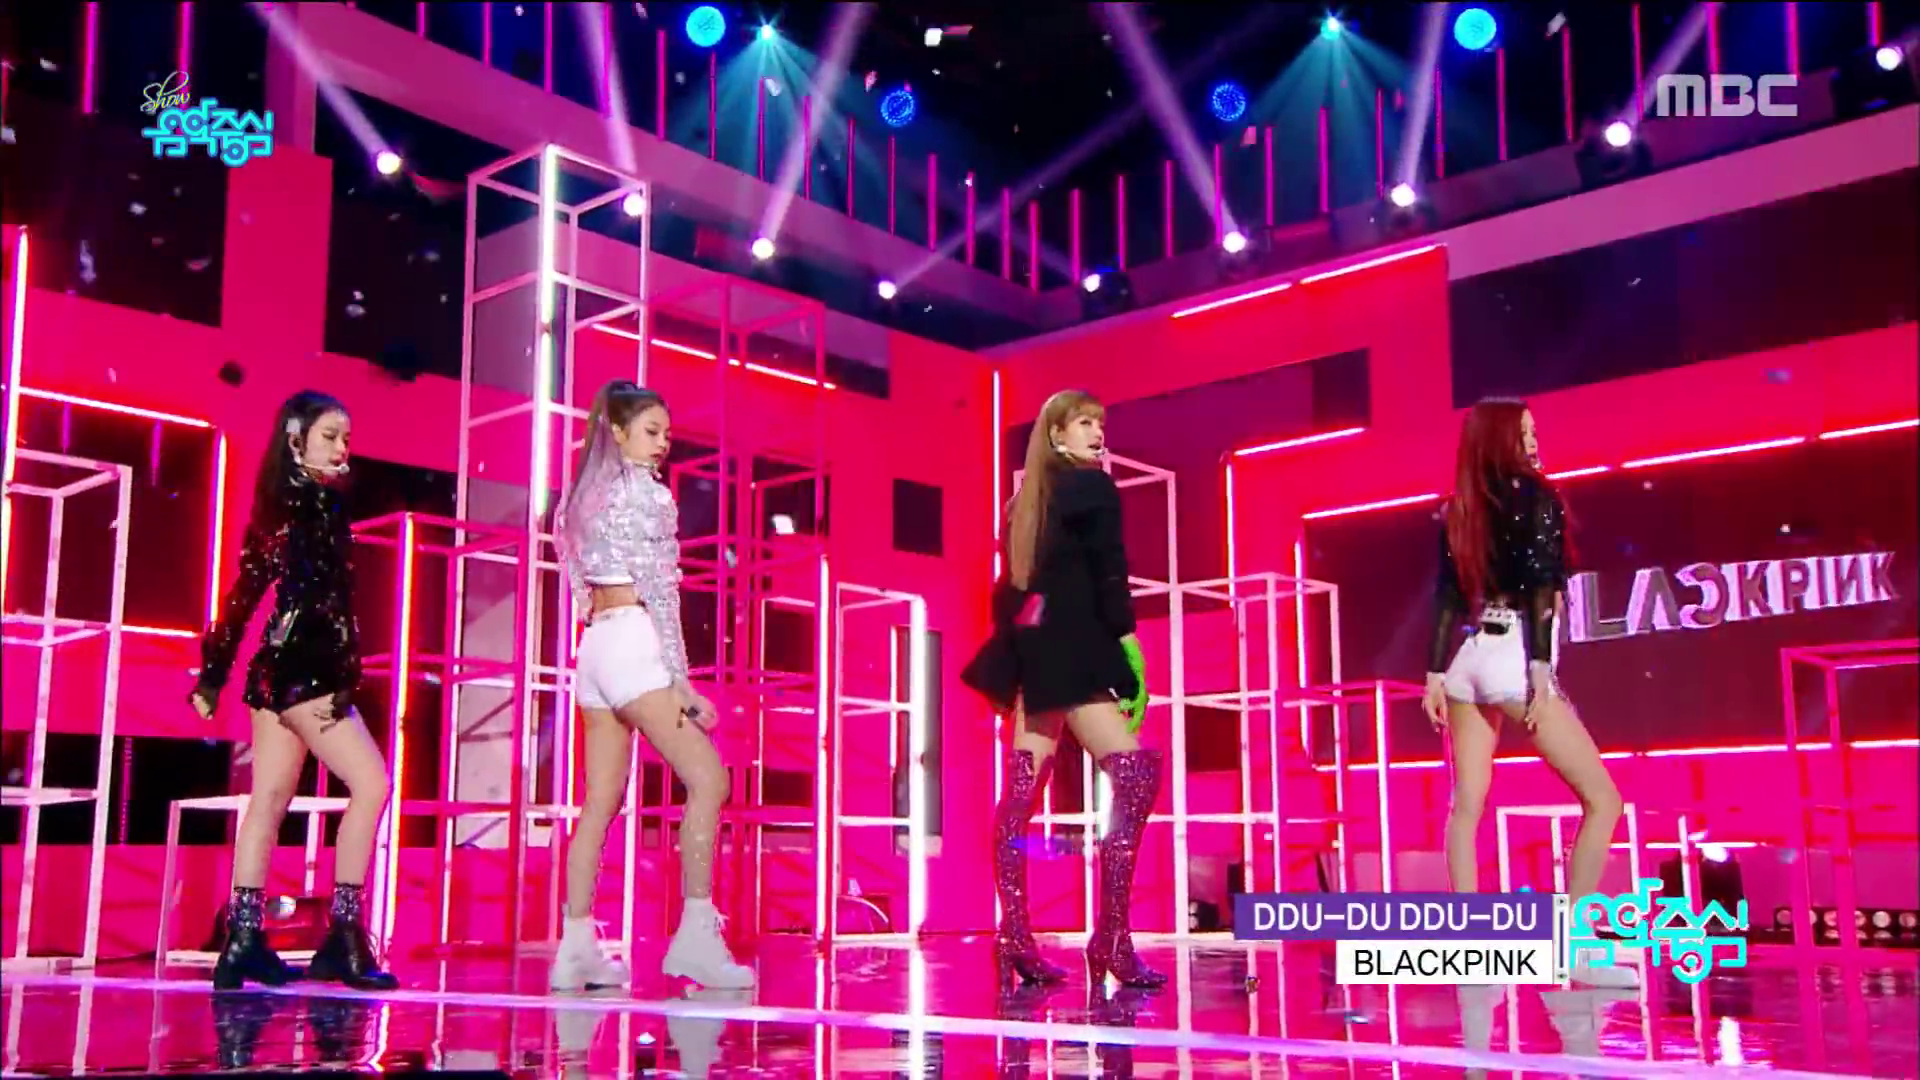 [SHOW] 180616 BLACKPINK – '뚜두뚜두' (DDU-DU DDU-DU) + FOREVER YOUNG Comeback Stages on MBC Music Core